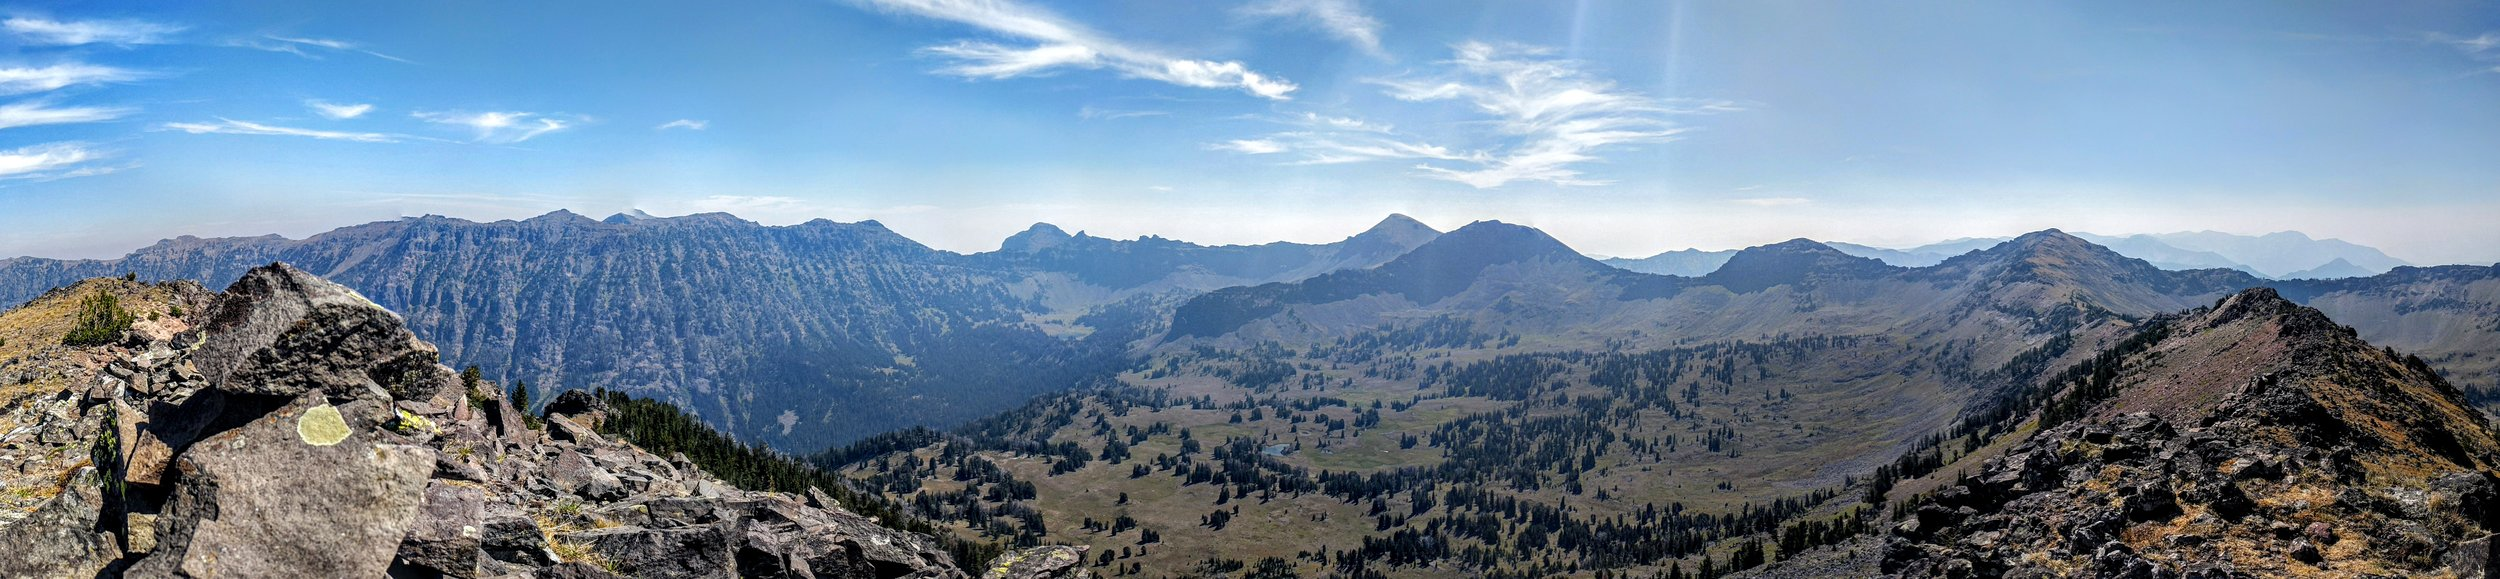 The view from Divide